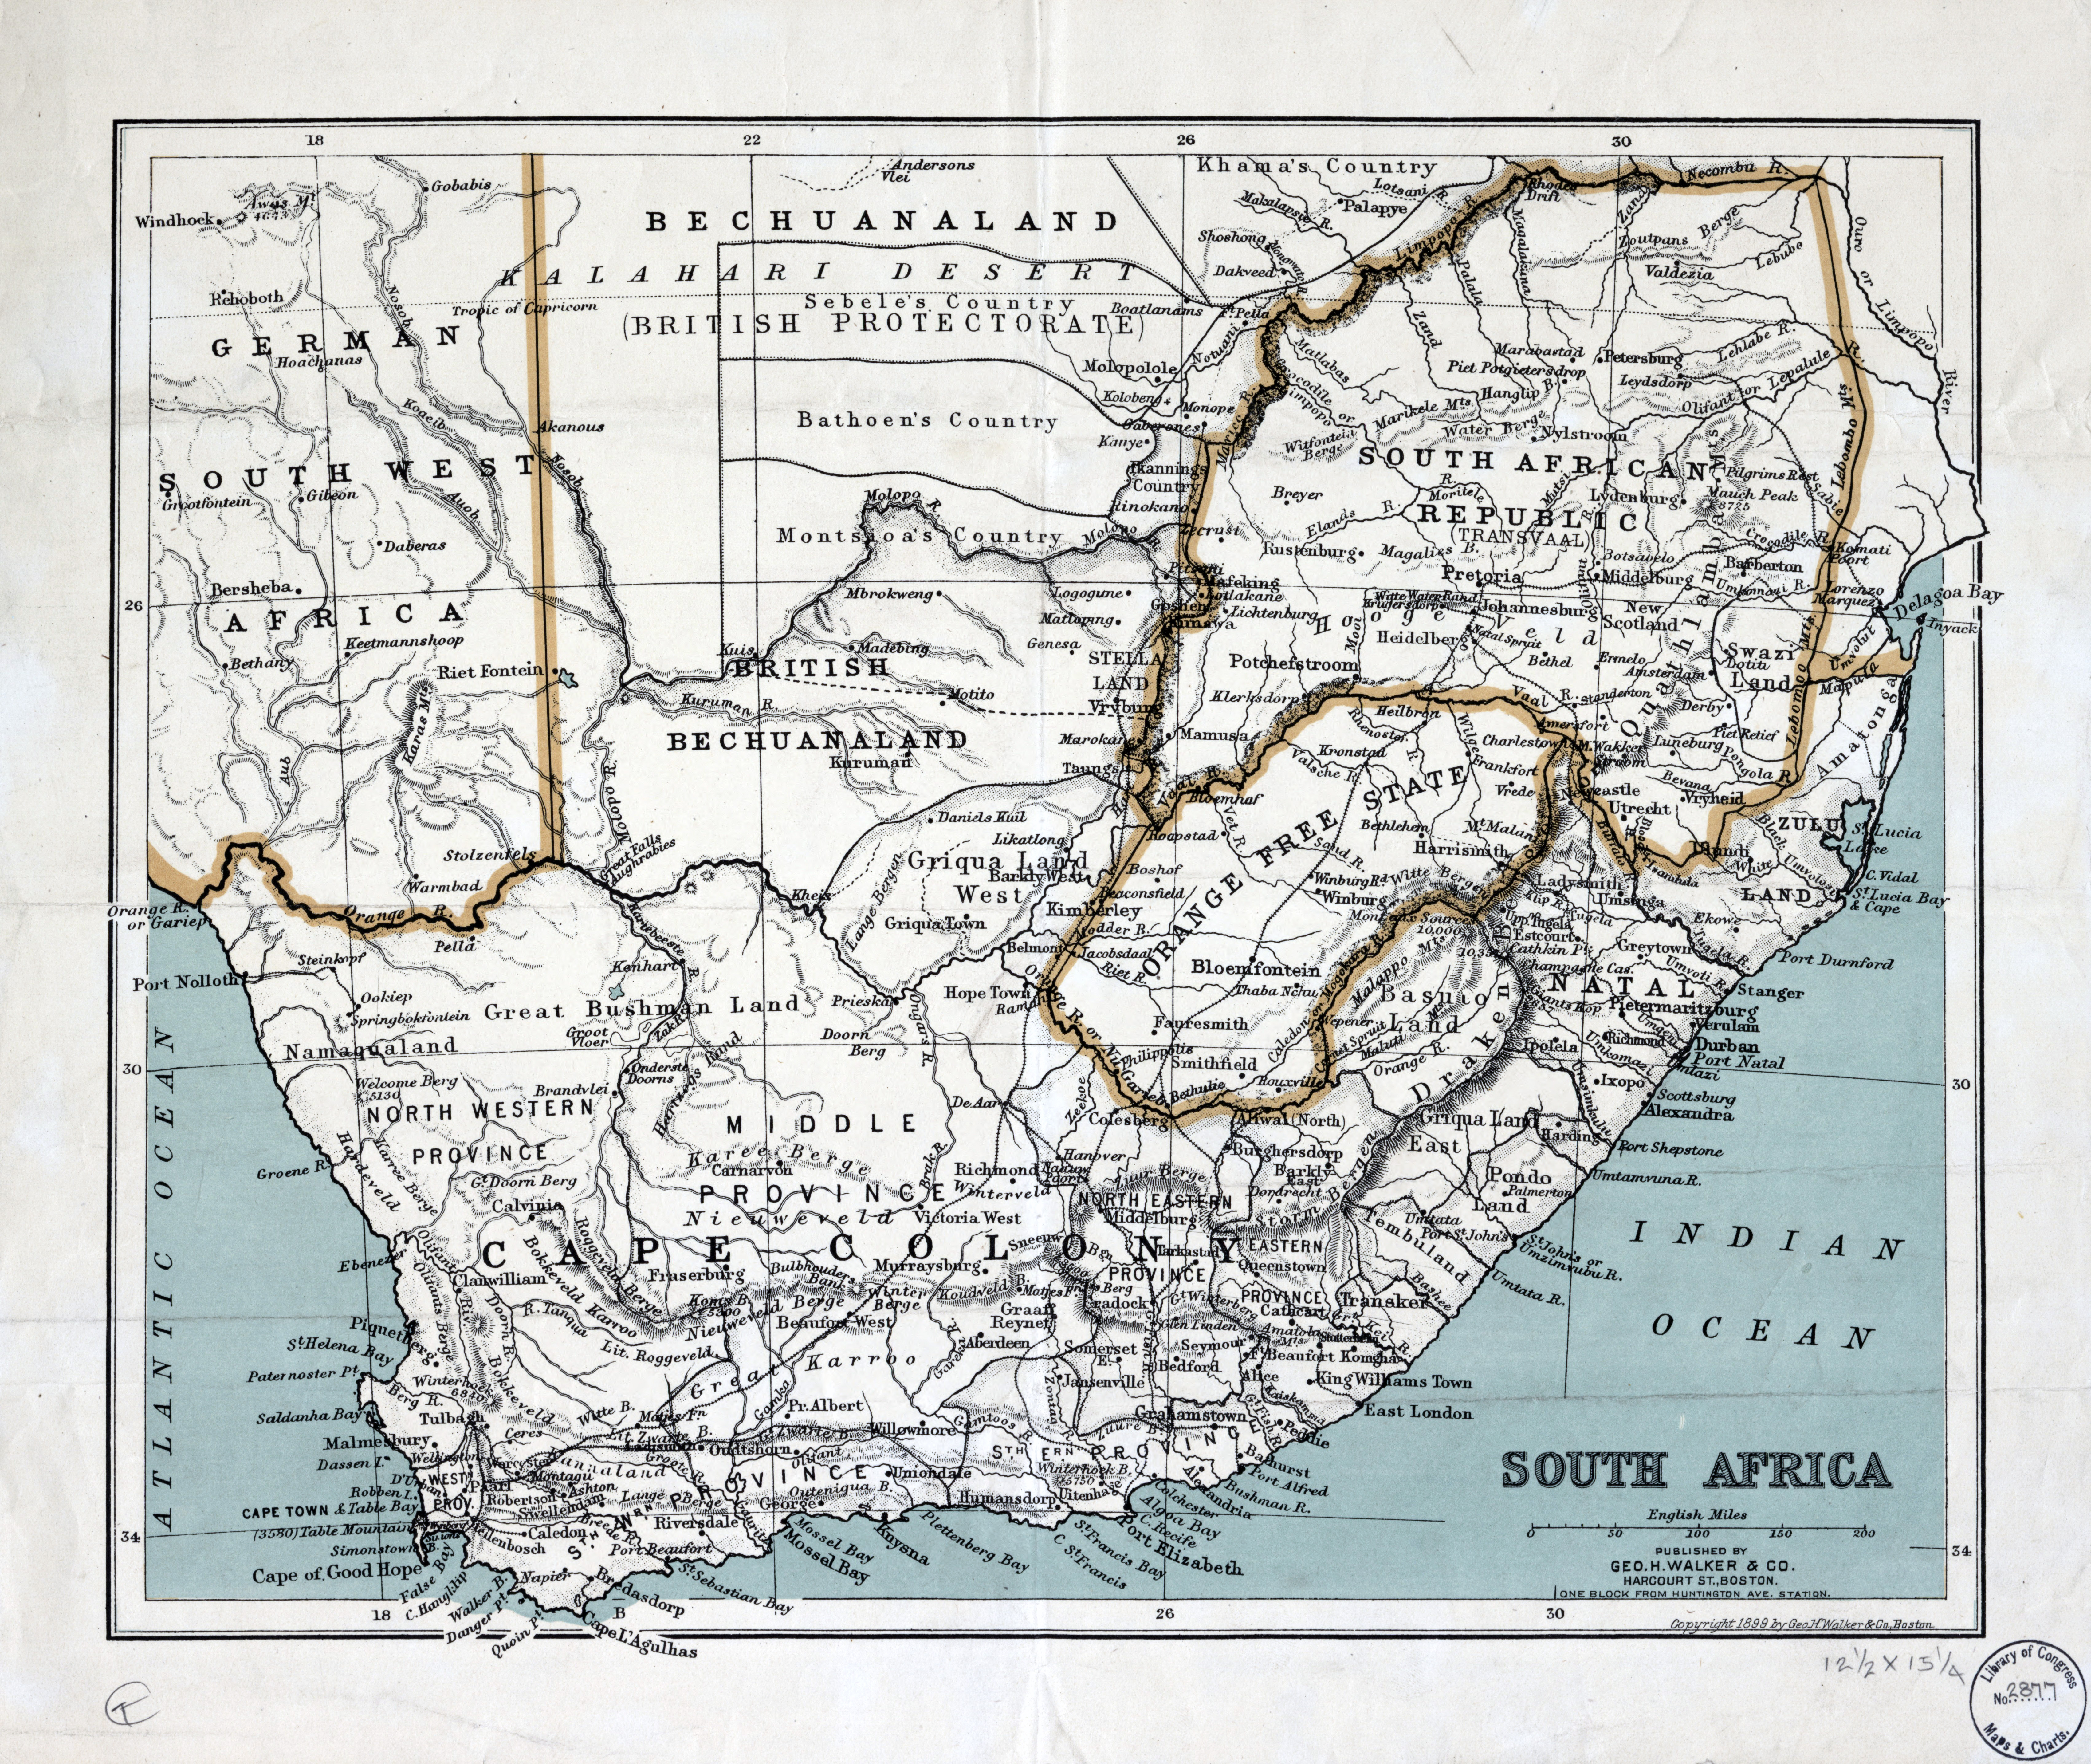 Large scale detailed old map of South Africa with relief and other